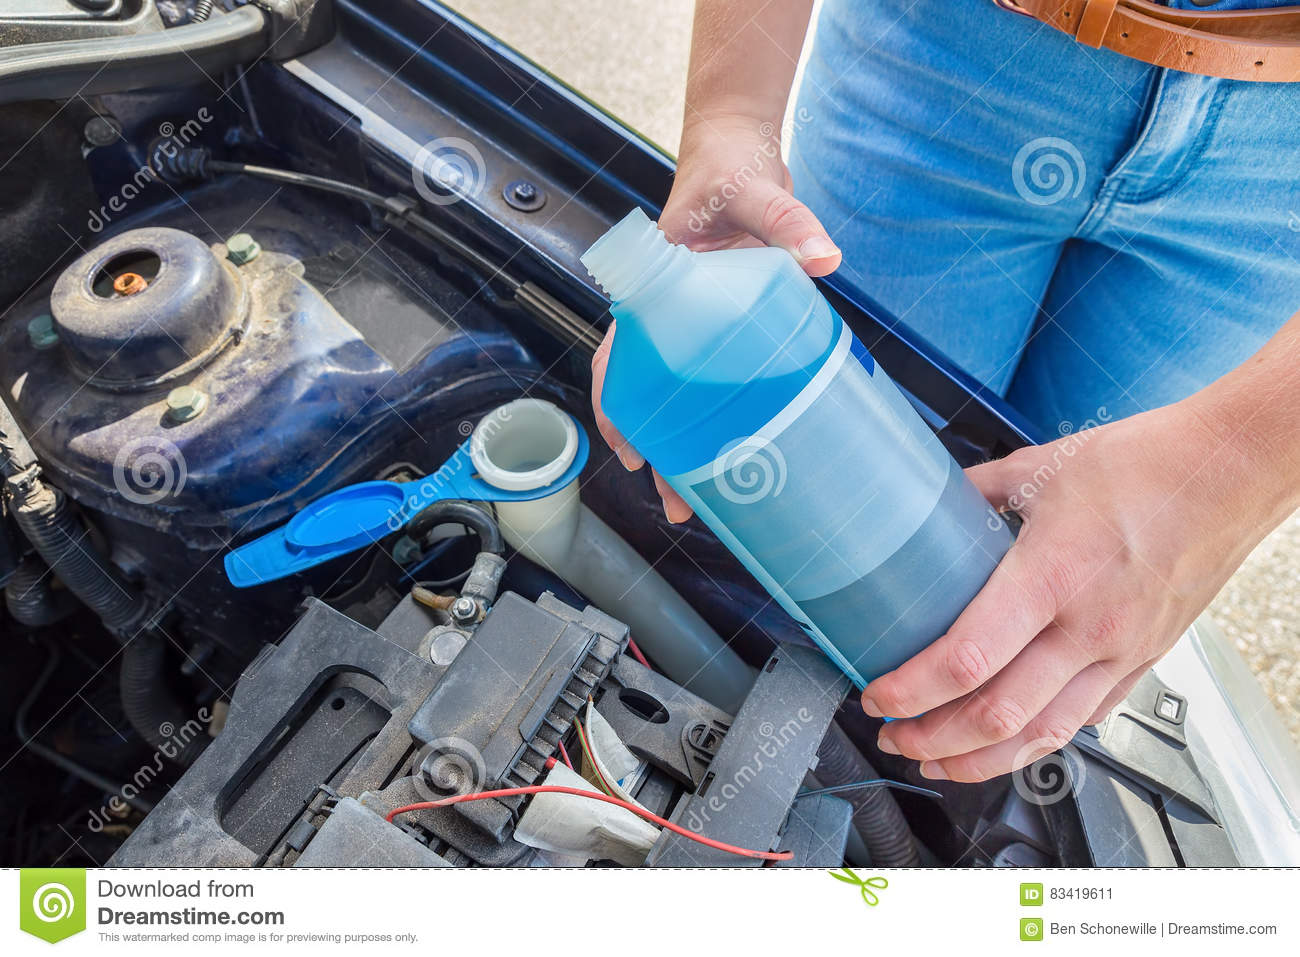 Woman Filling Car Reservoir With Blue Fluid In Bottle